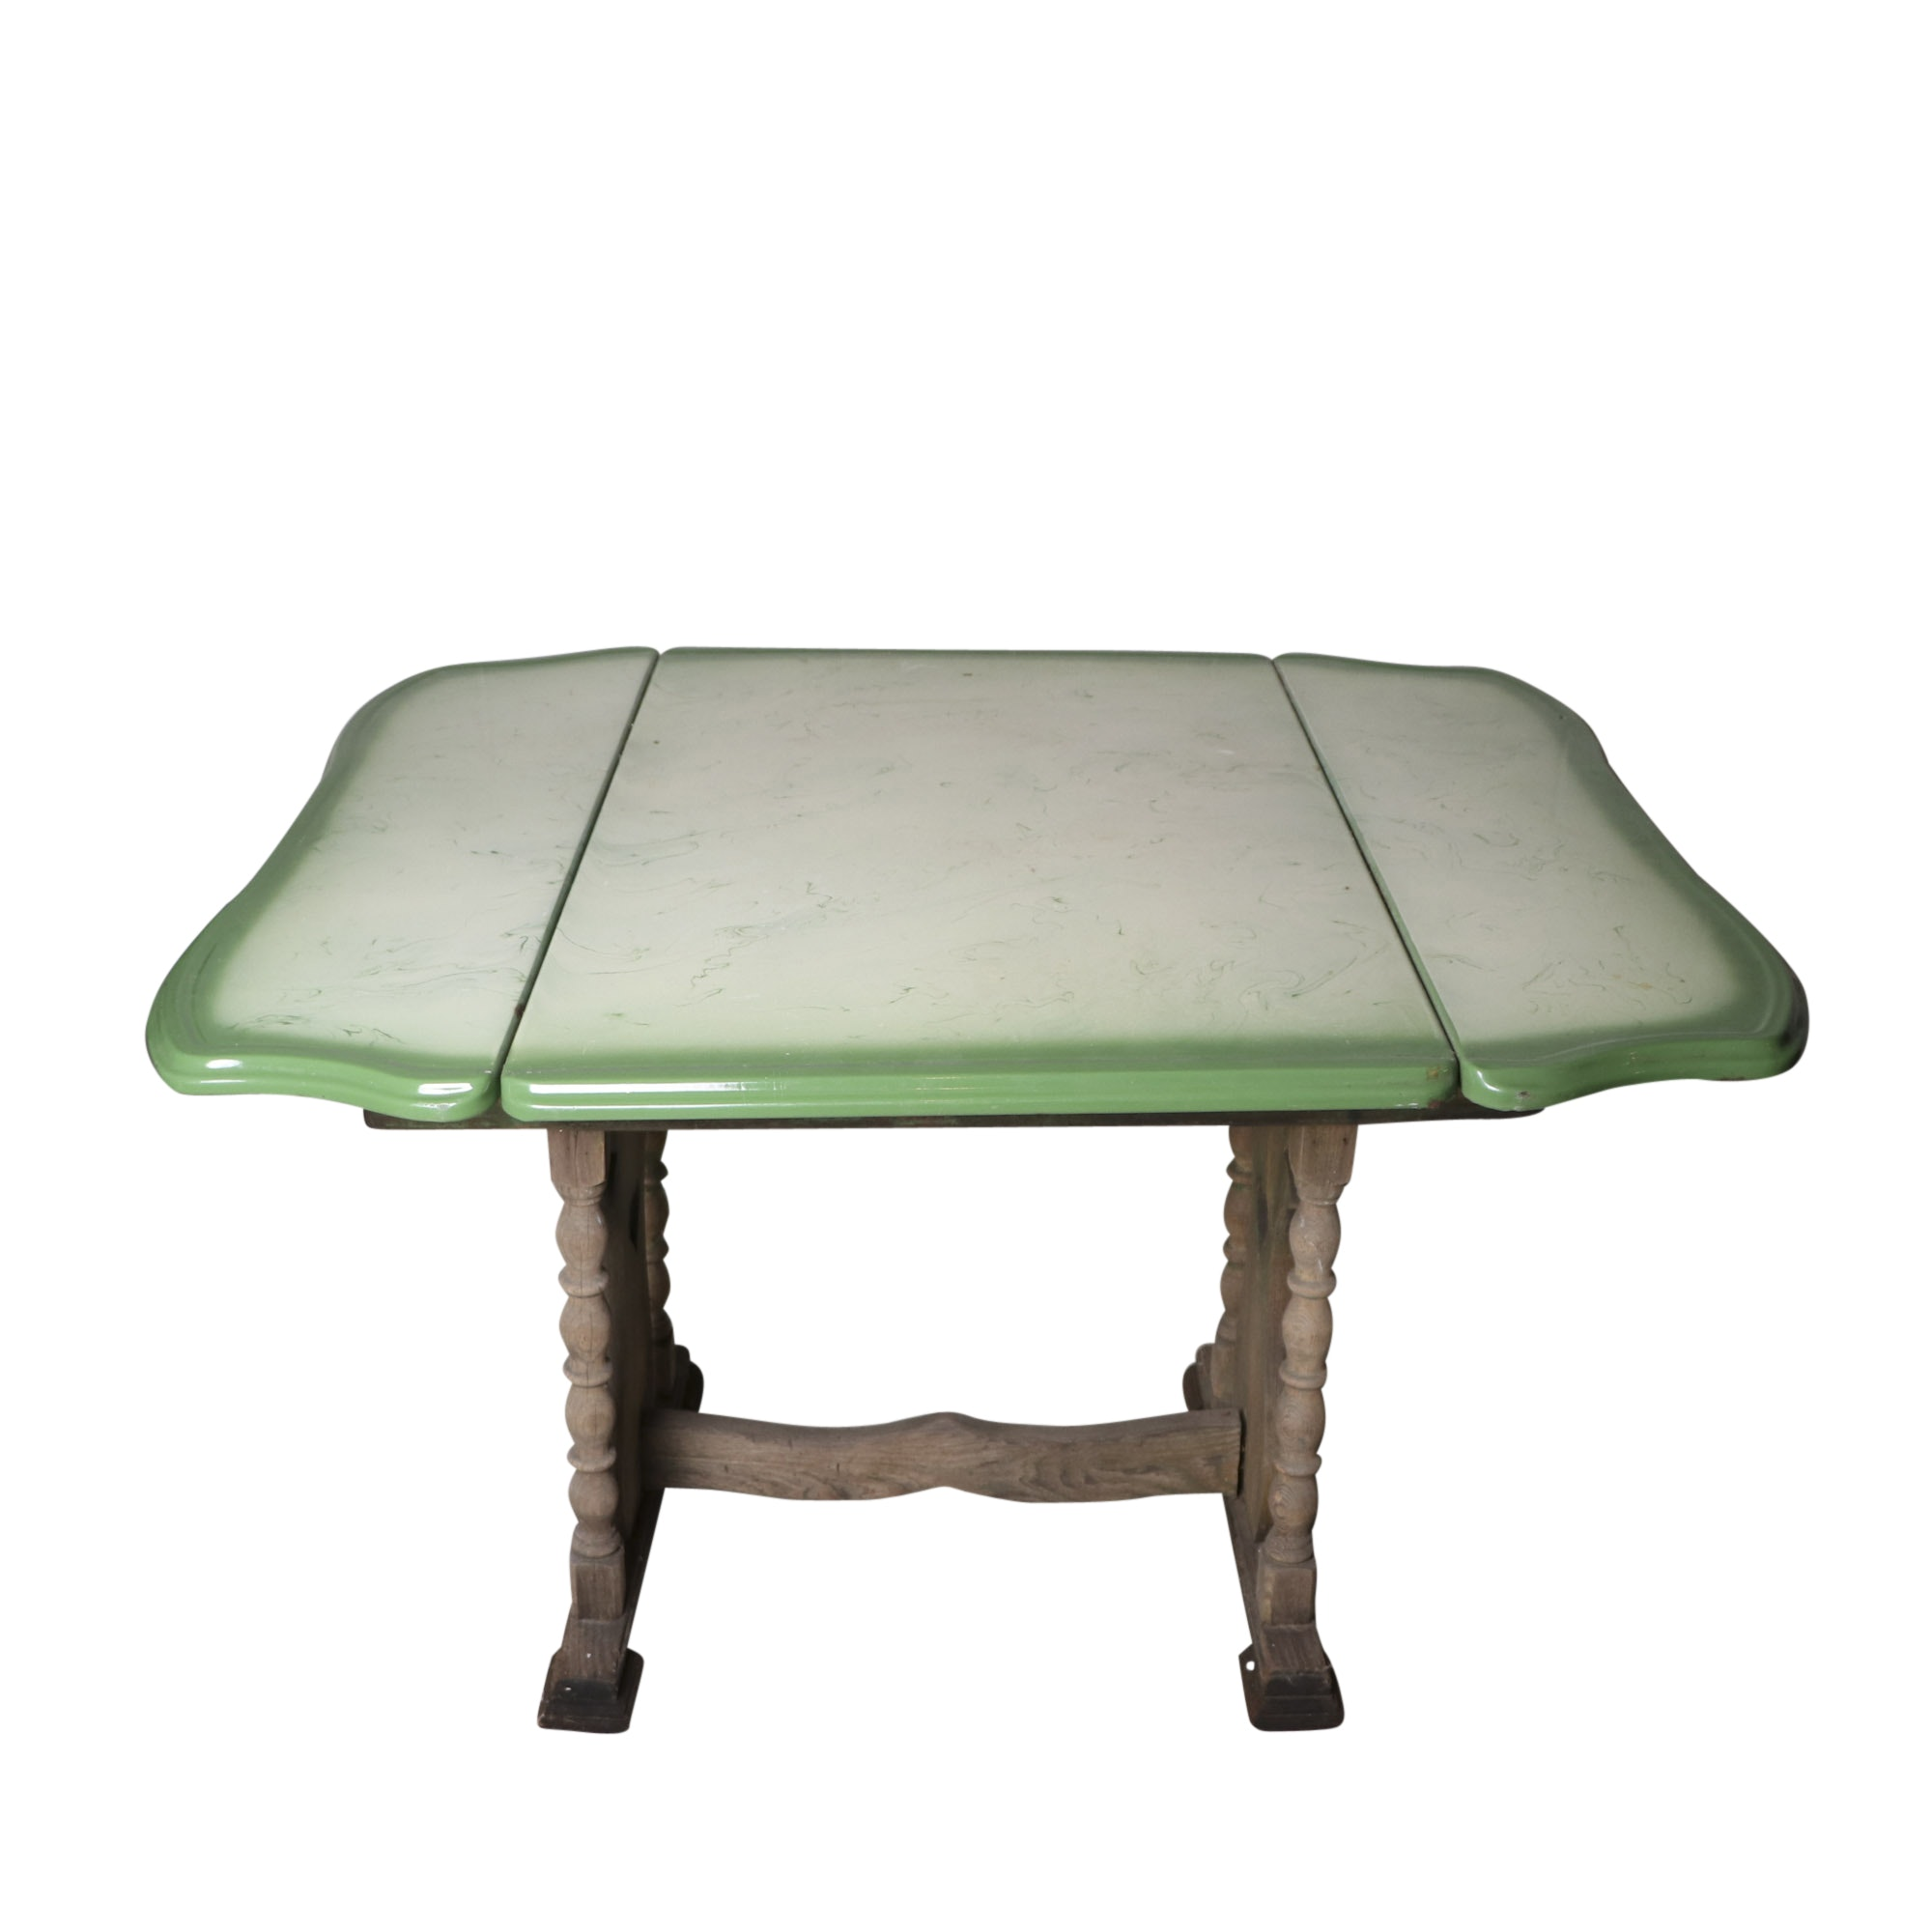 Beau Vintage Wood Trestle Table With Enameled Tin Top ...